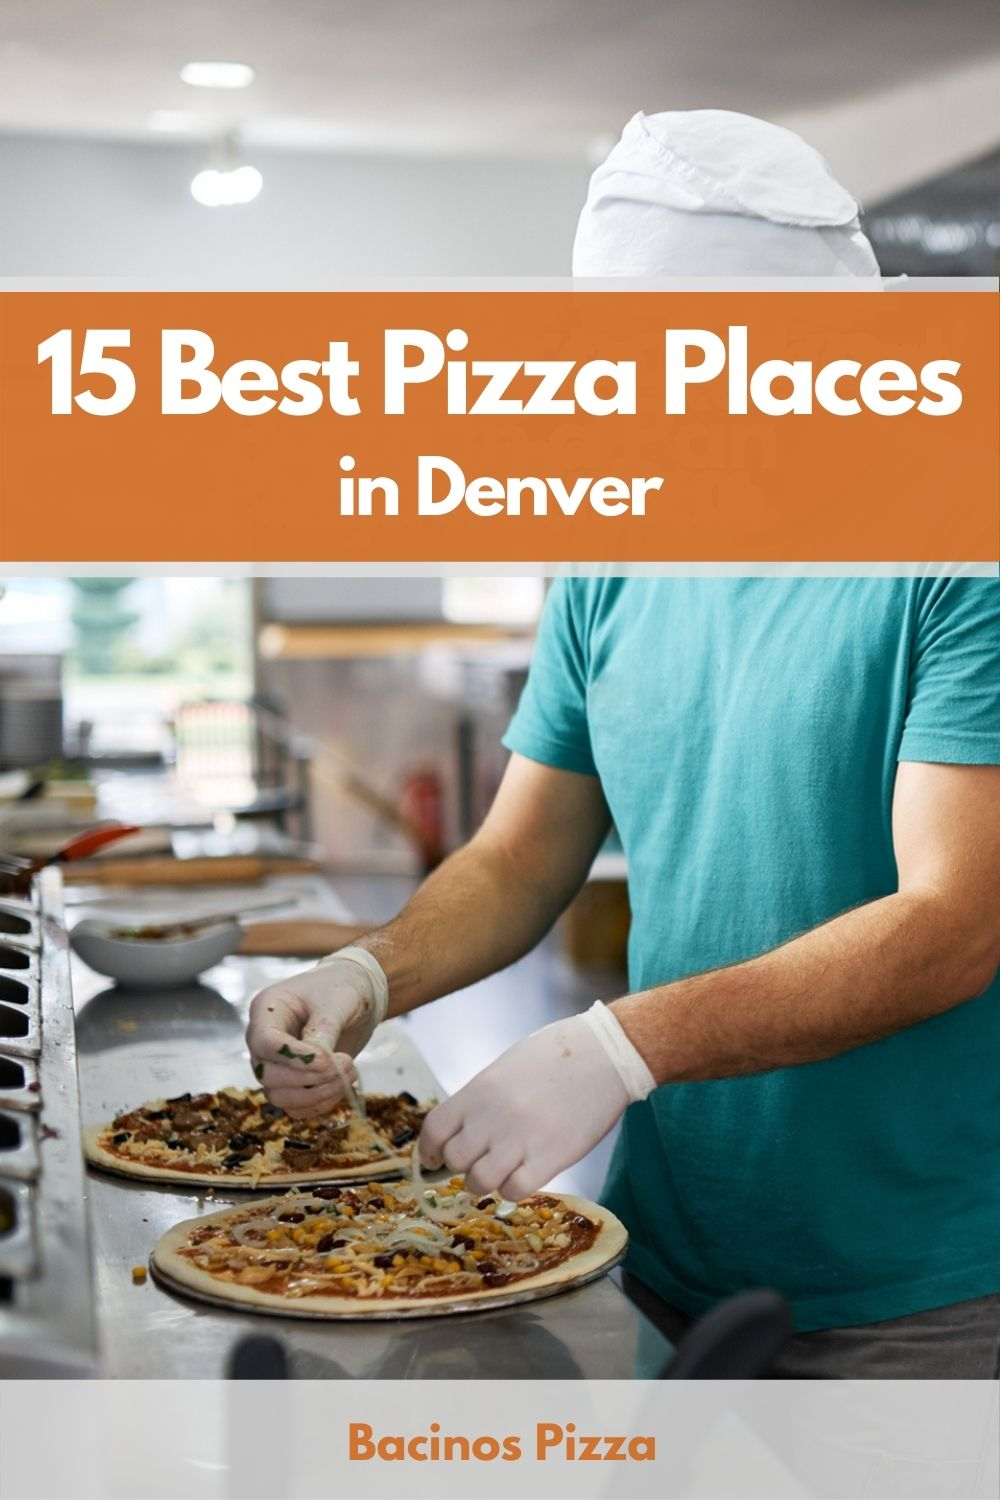 15 Best Pizza Places in Denver pin 2